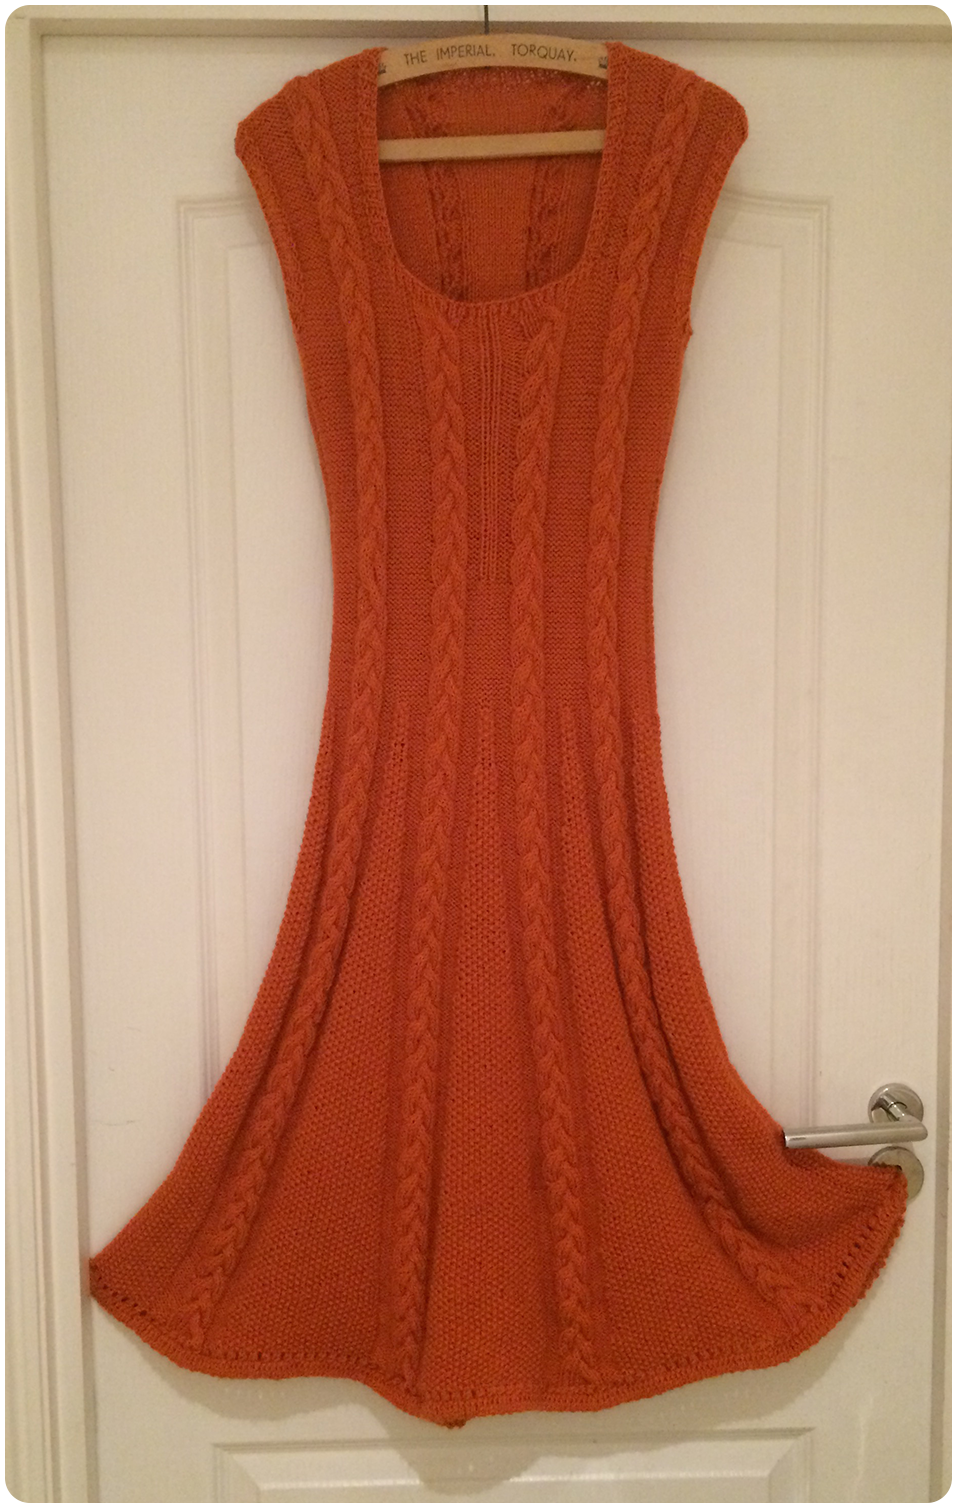 The Icon Dress, finished after a long, hard slog.